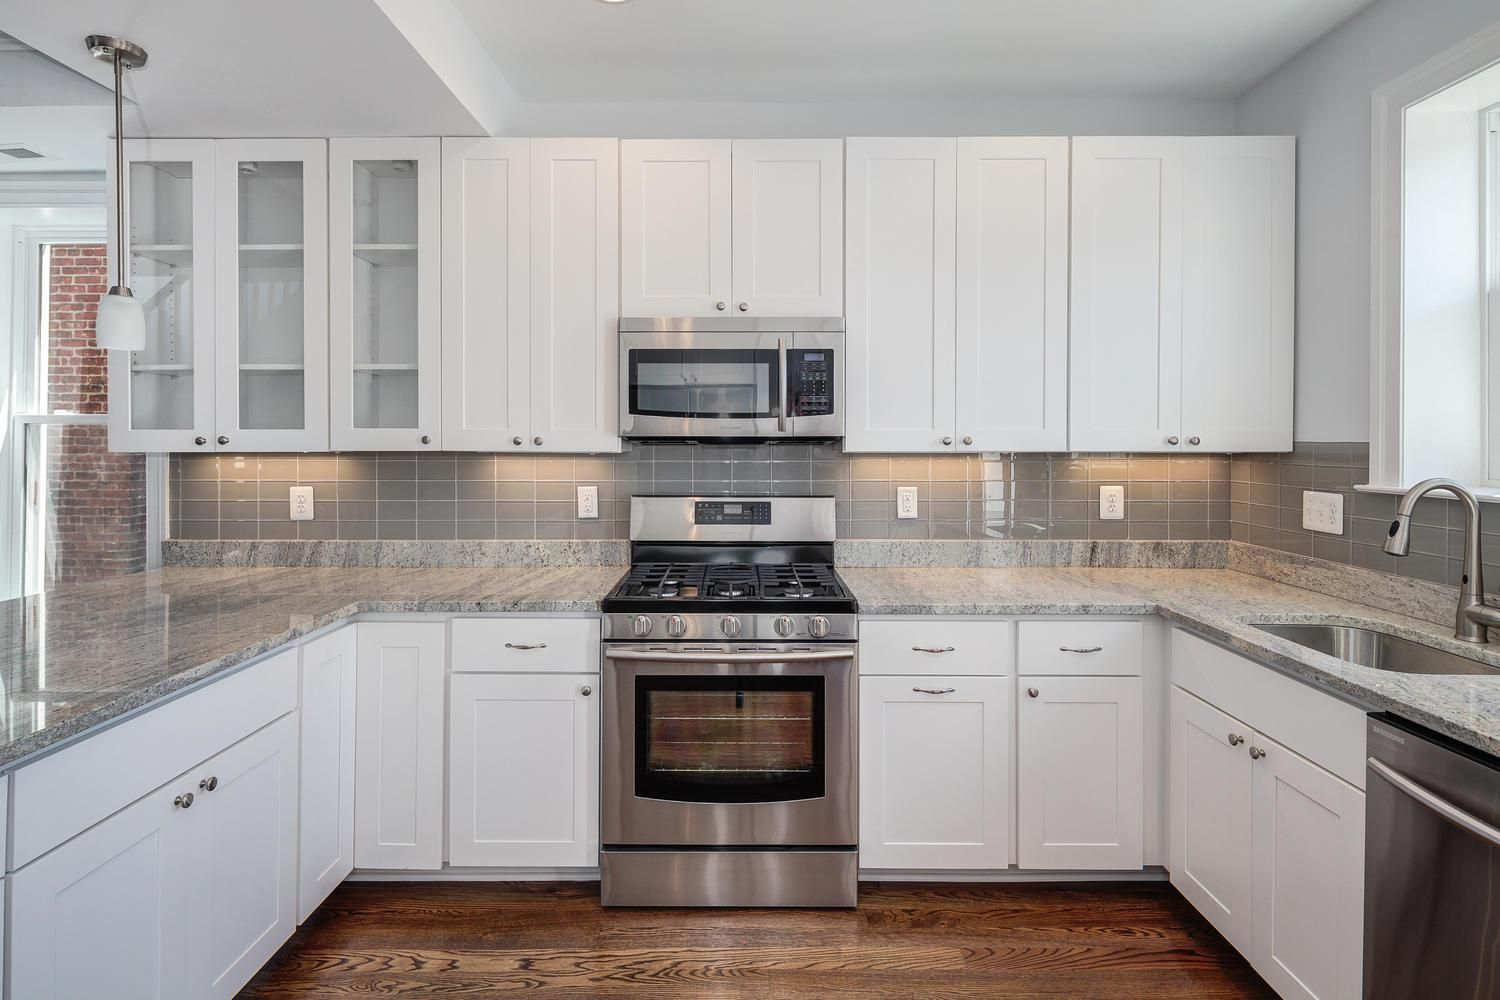 Backsplash Kitchen Subway Tile Outlet White Cabinets Grey Tiles